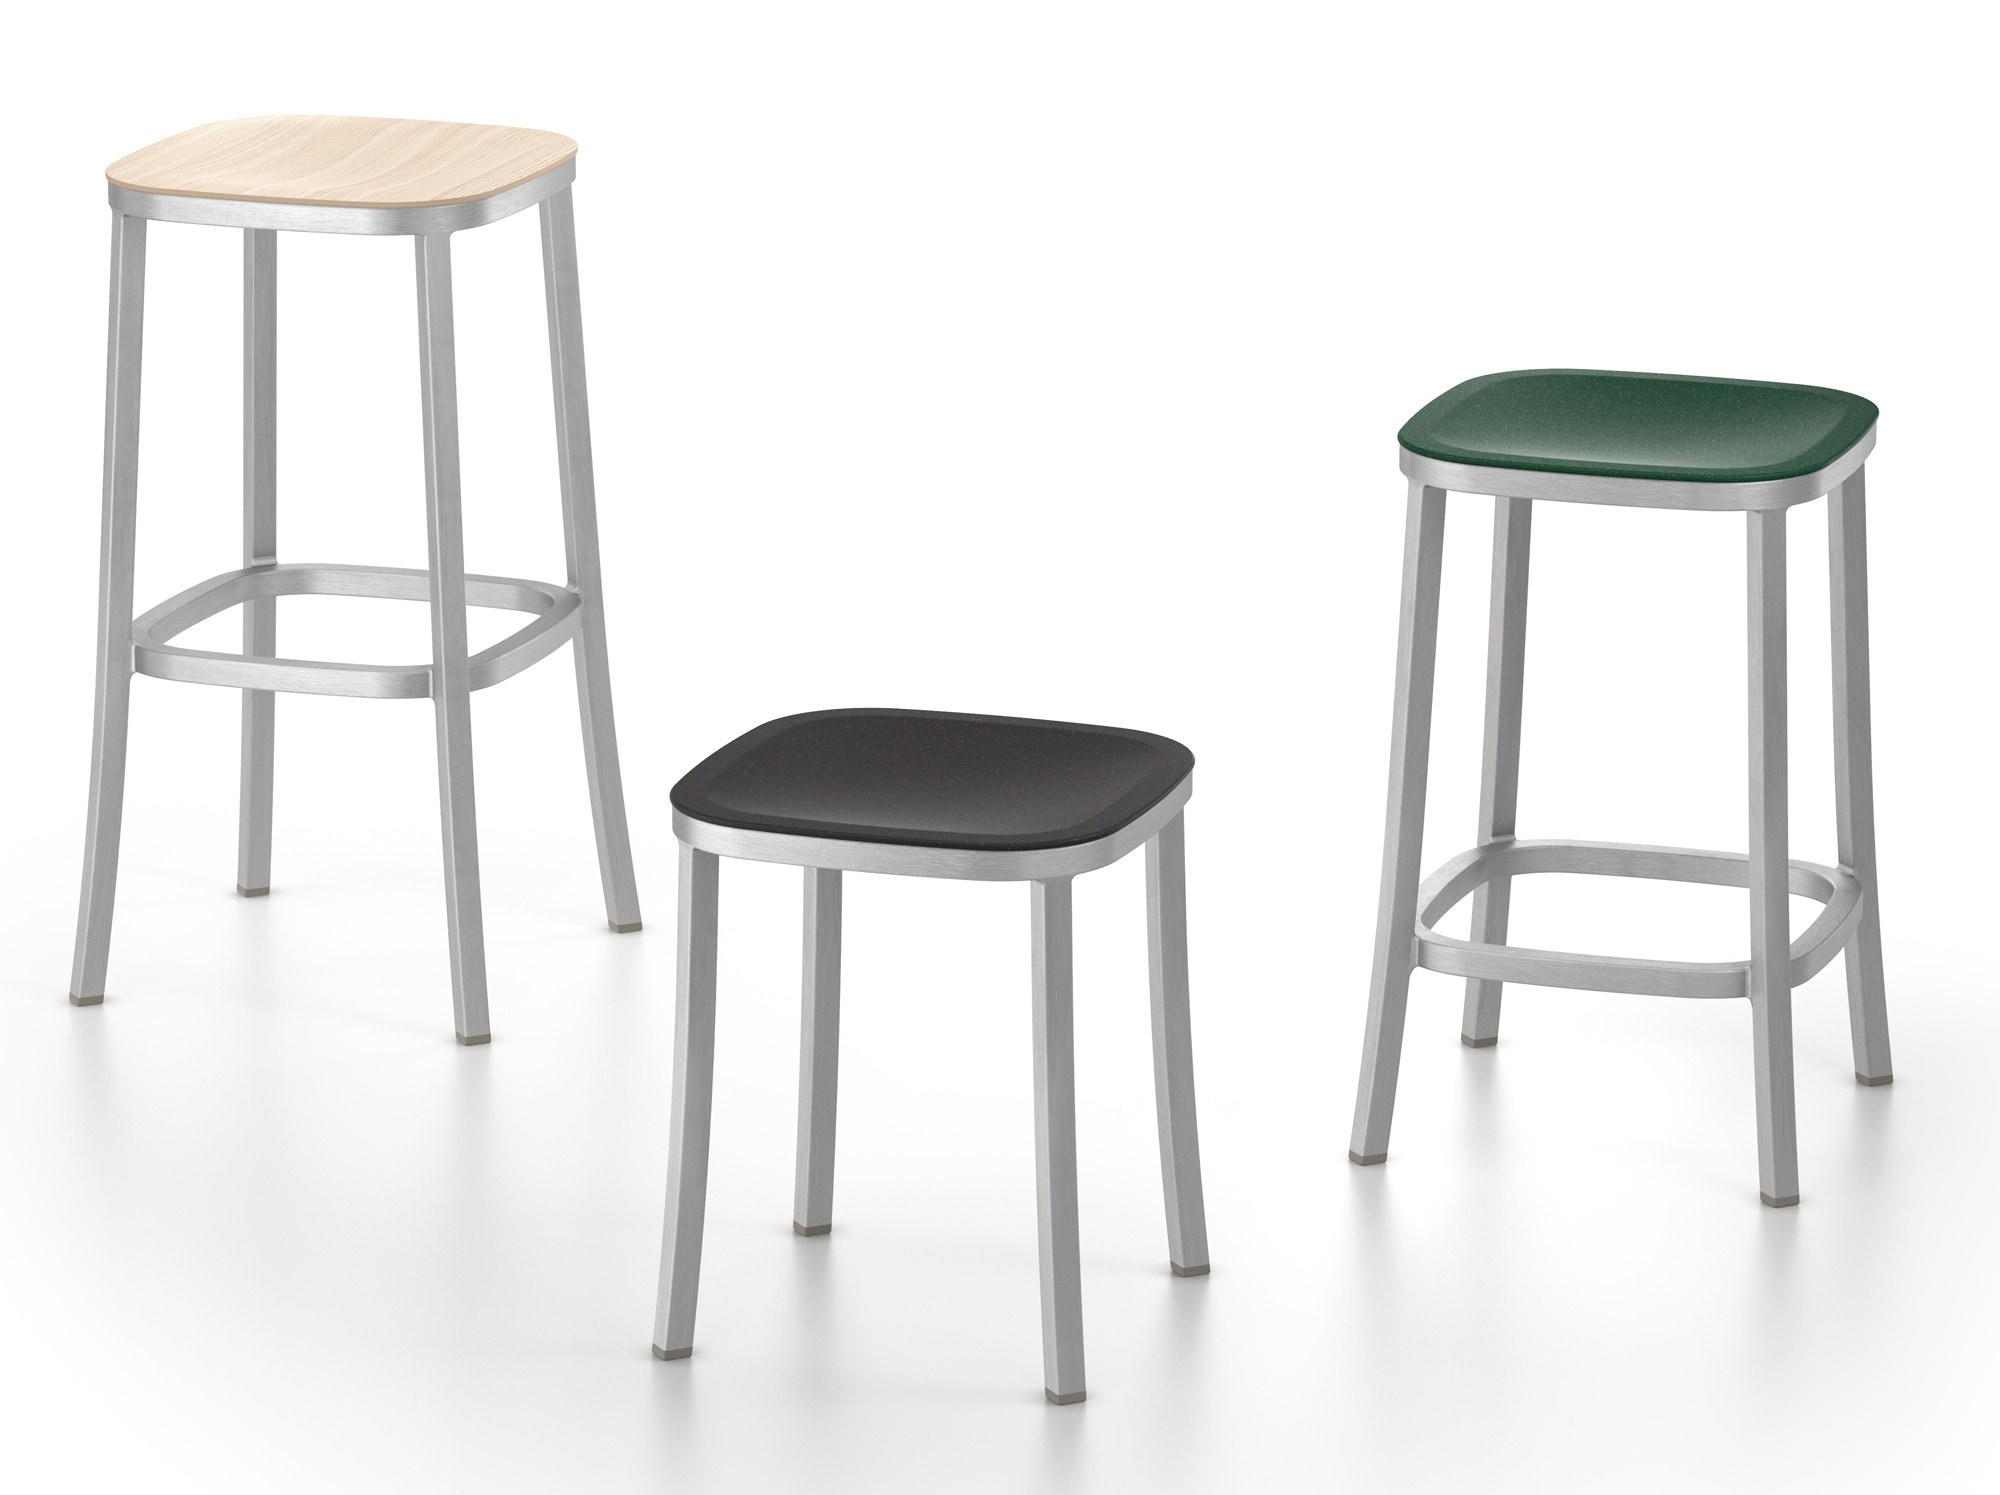 Emeco 1 INCH Stool By Jasper Morrison (On Production Hold)